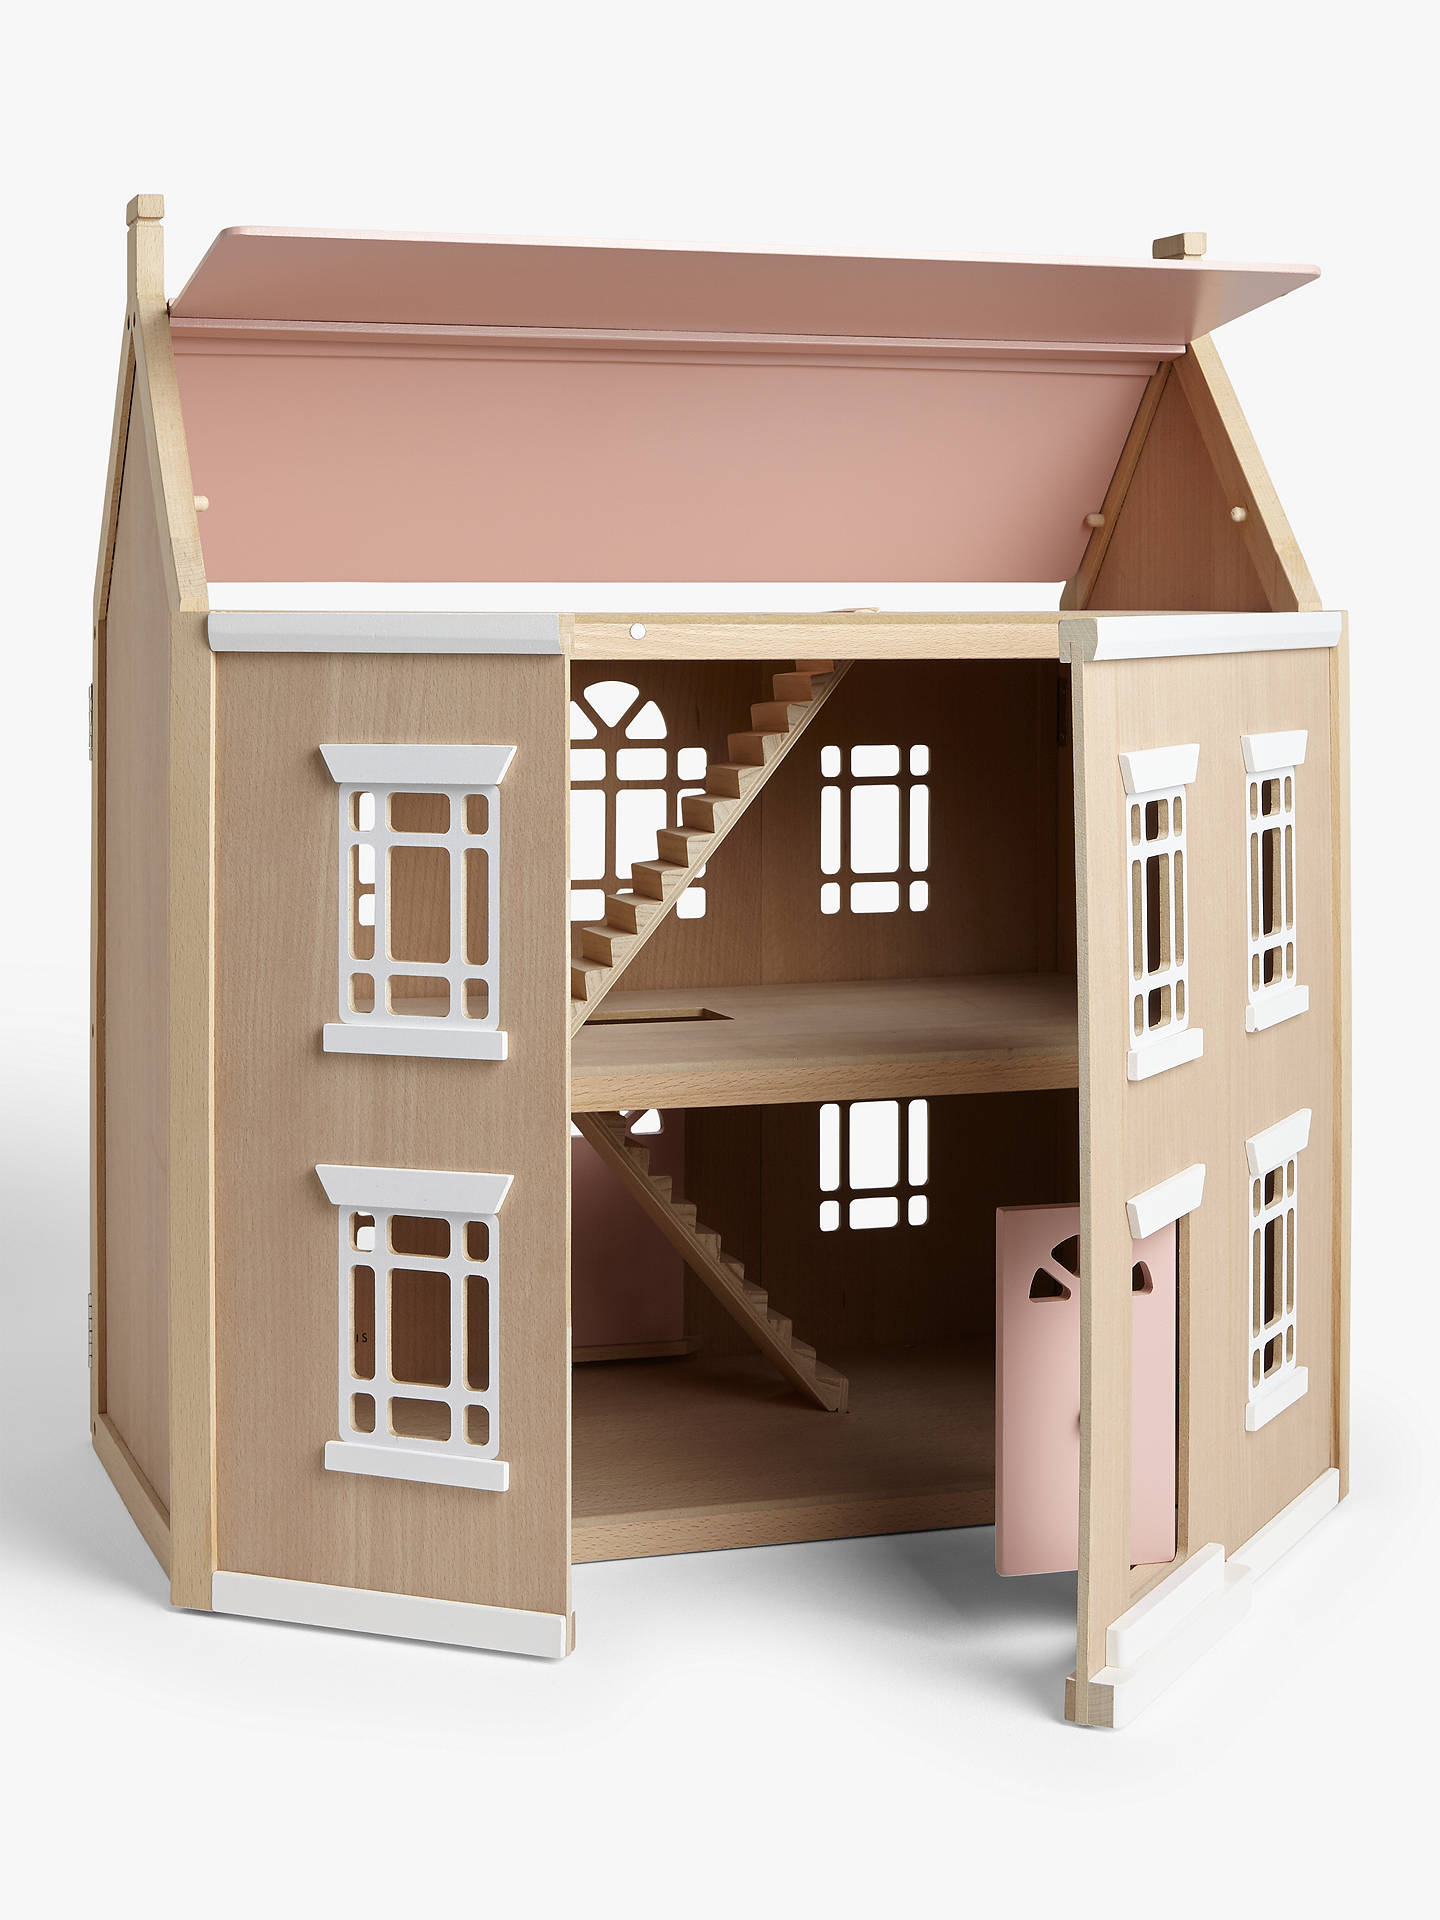 Buy John Lewis & Partners Wooden Leckford Doll's House Online at johnlewis.com